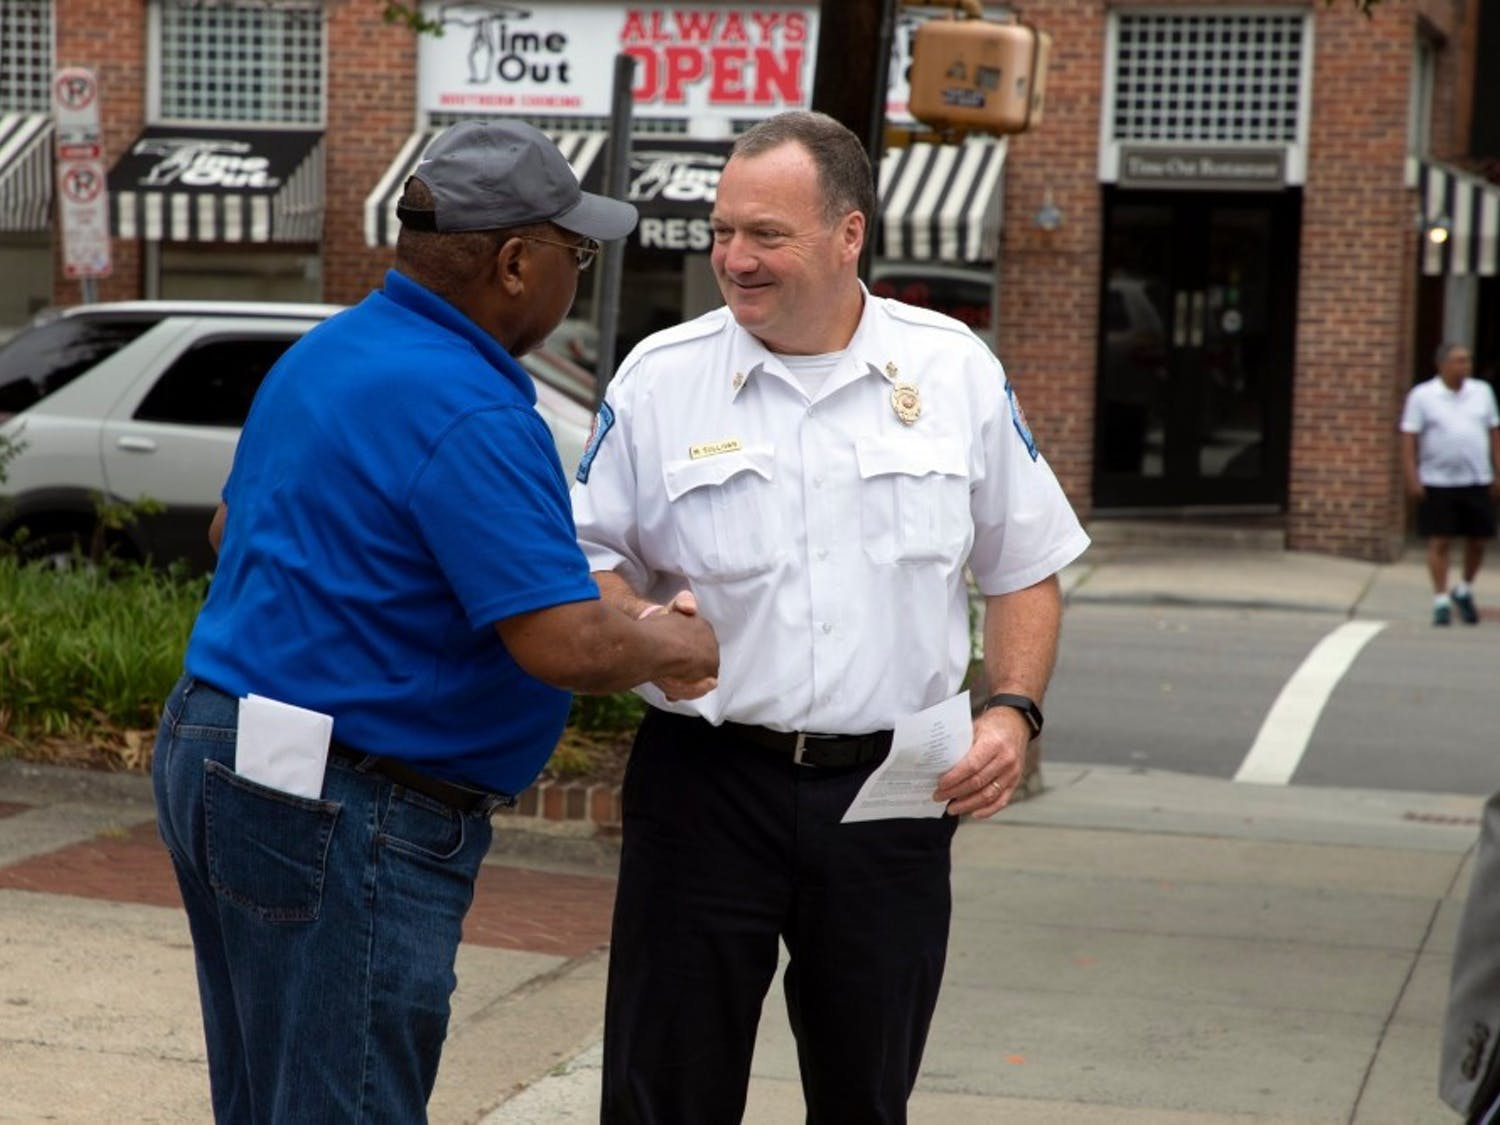 Chapel Hill Fire Chief Matt Sullivan interacts with the community. He is set to retire in January. Photo courtesy of the Town of Chapel Hill.